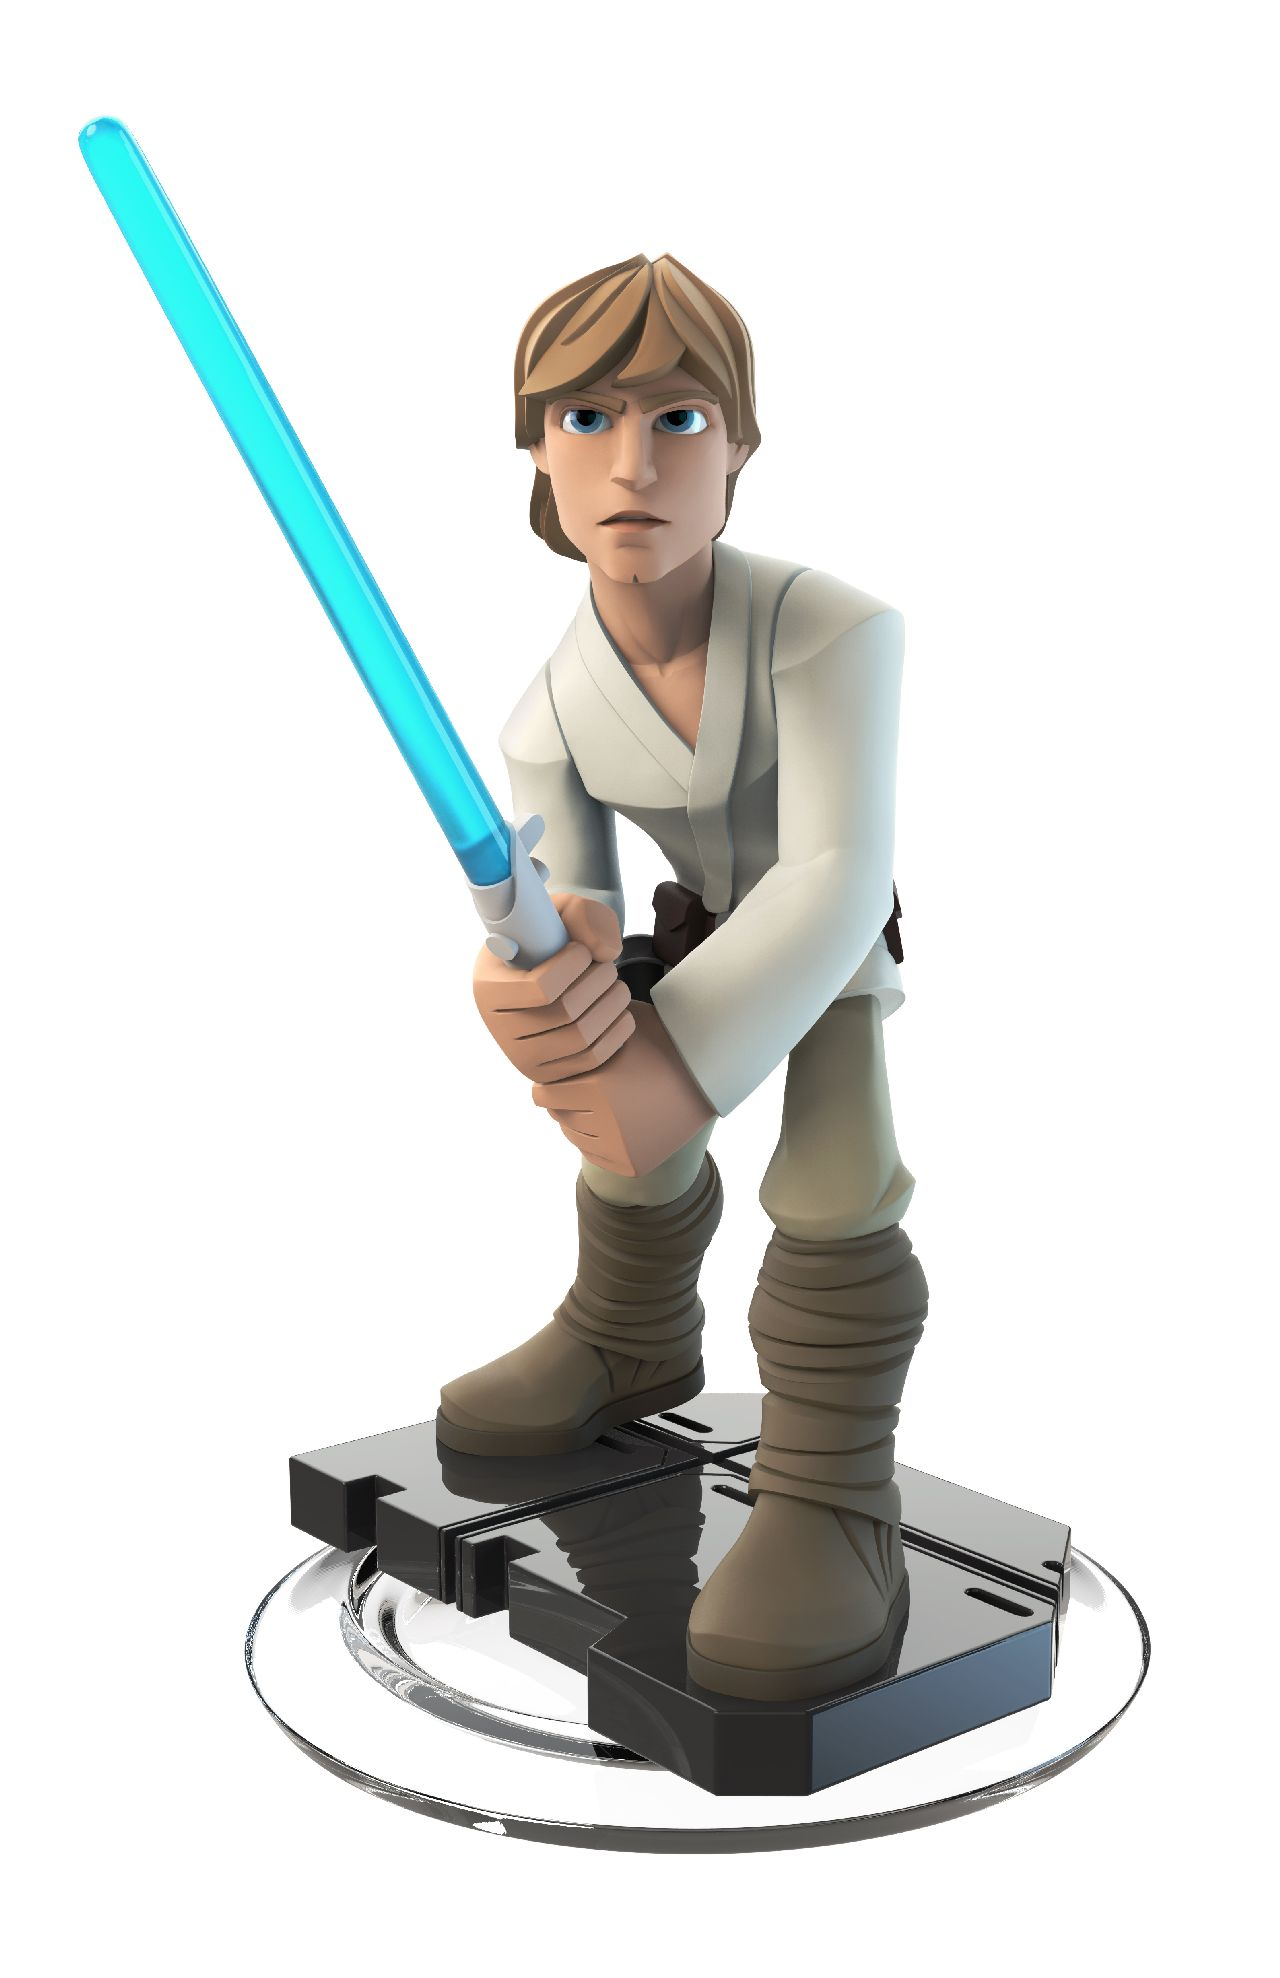 Disney Infinity 3.0 Luke Skywalker